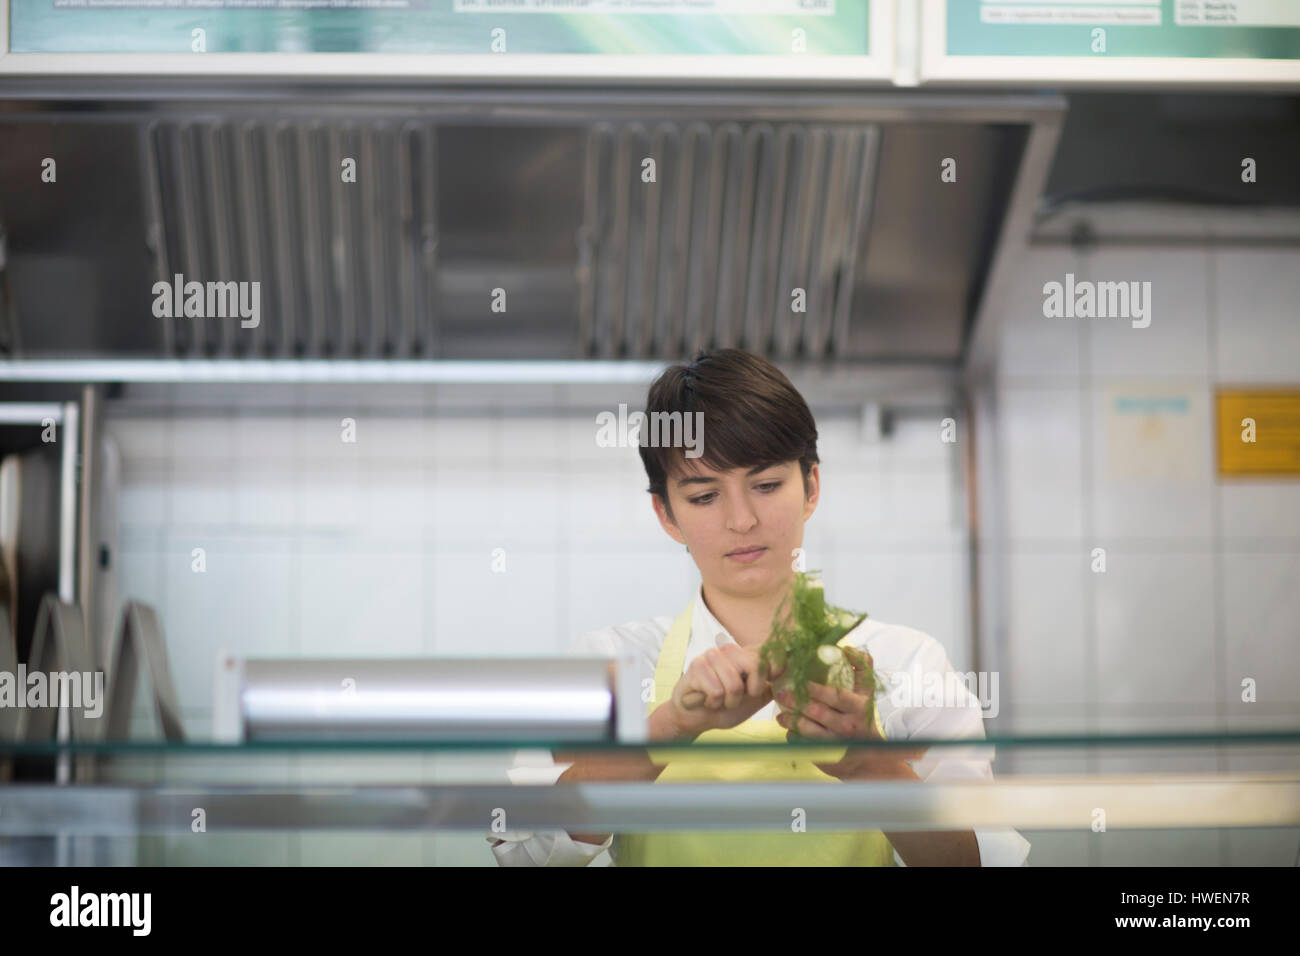 Young woman preparing food in fast food shop - Stock Image